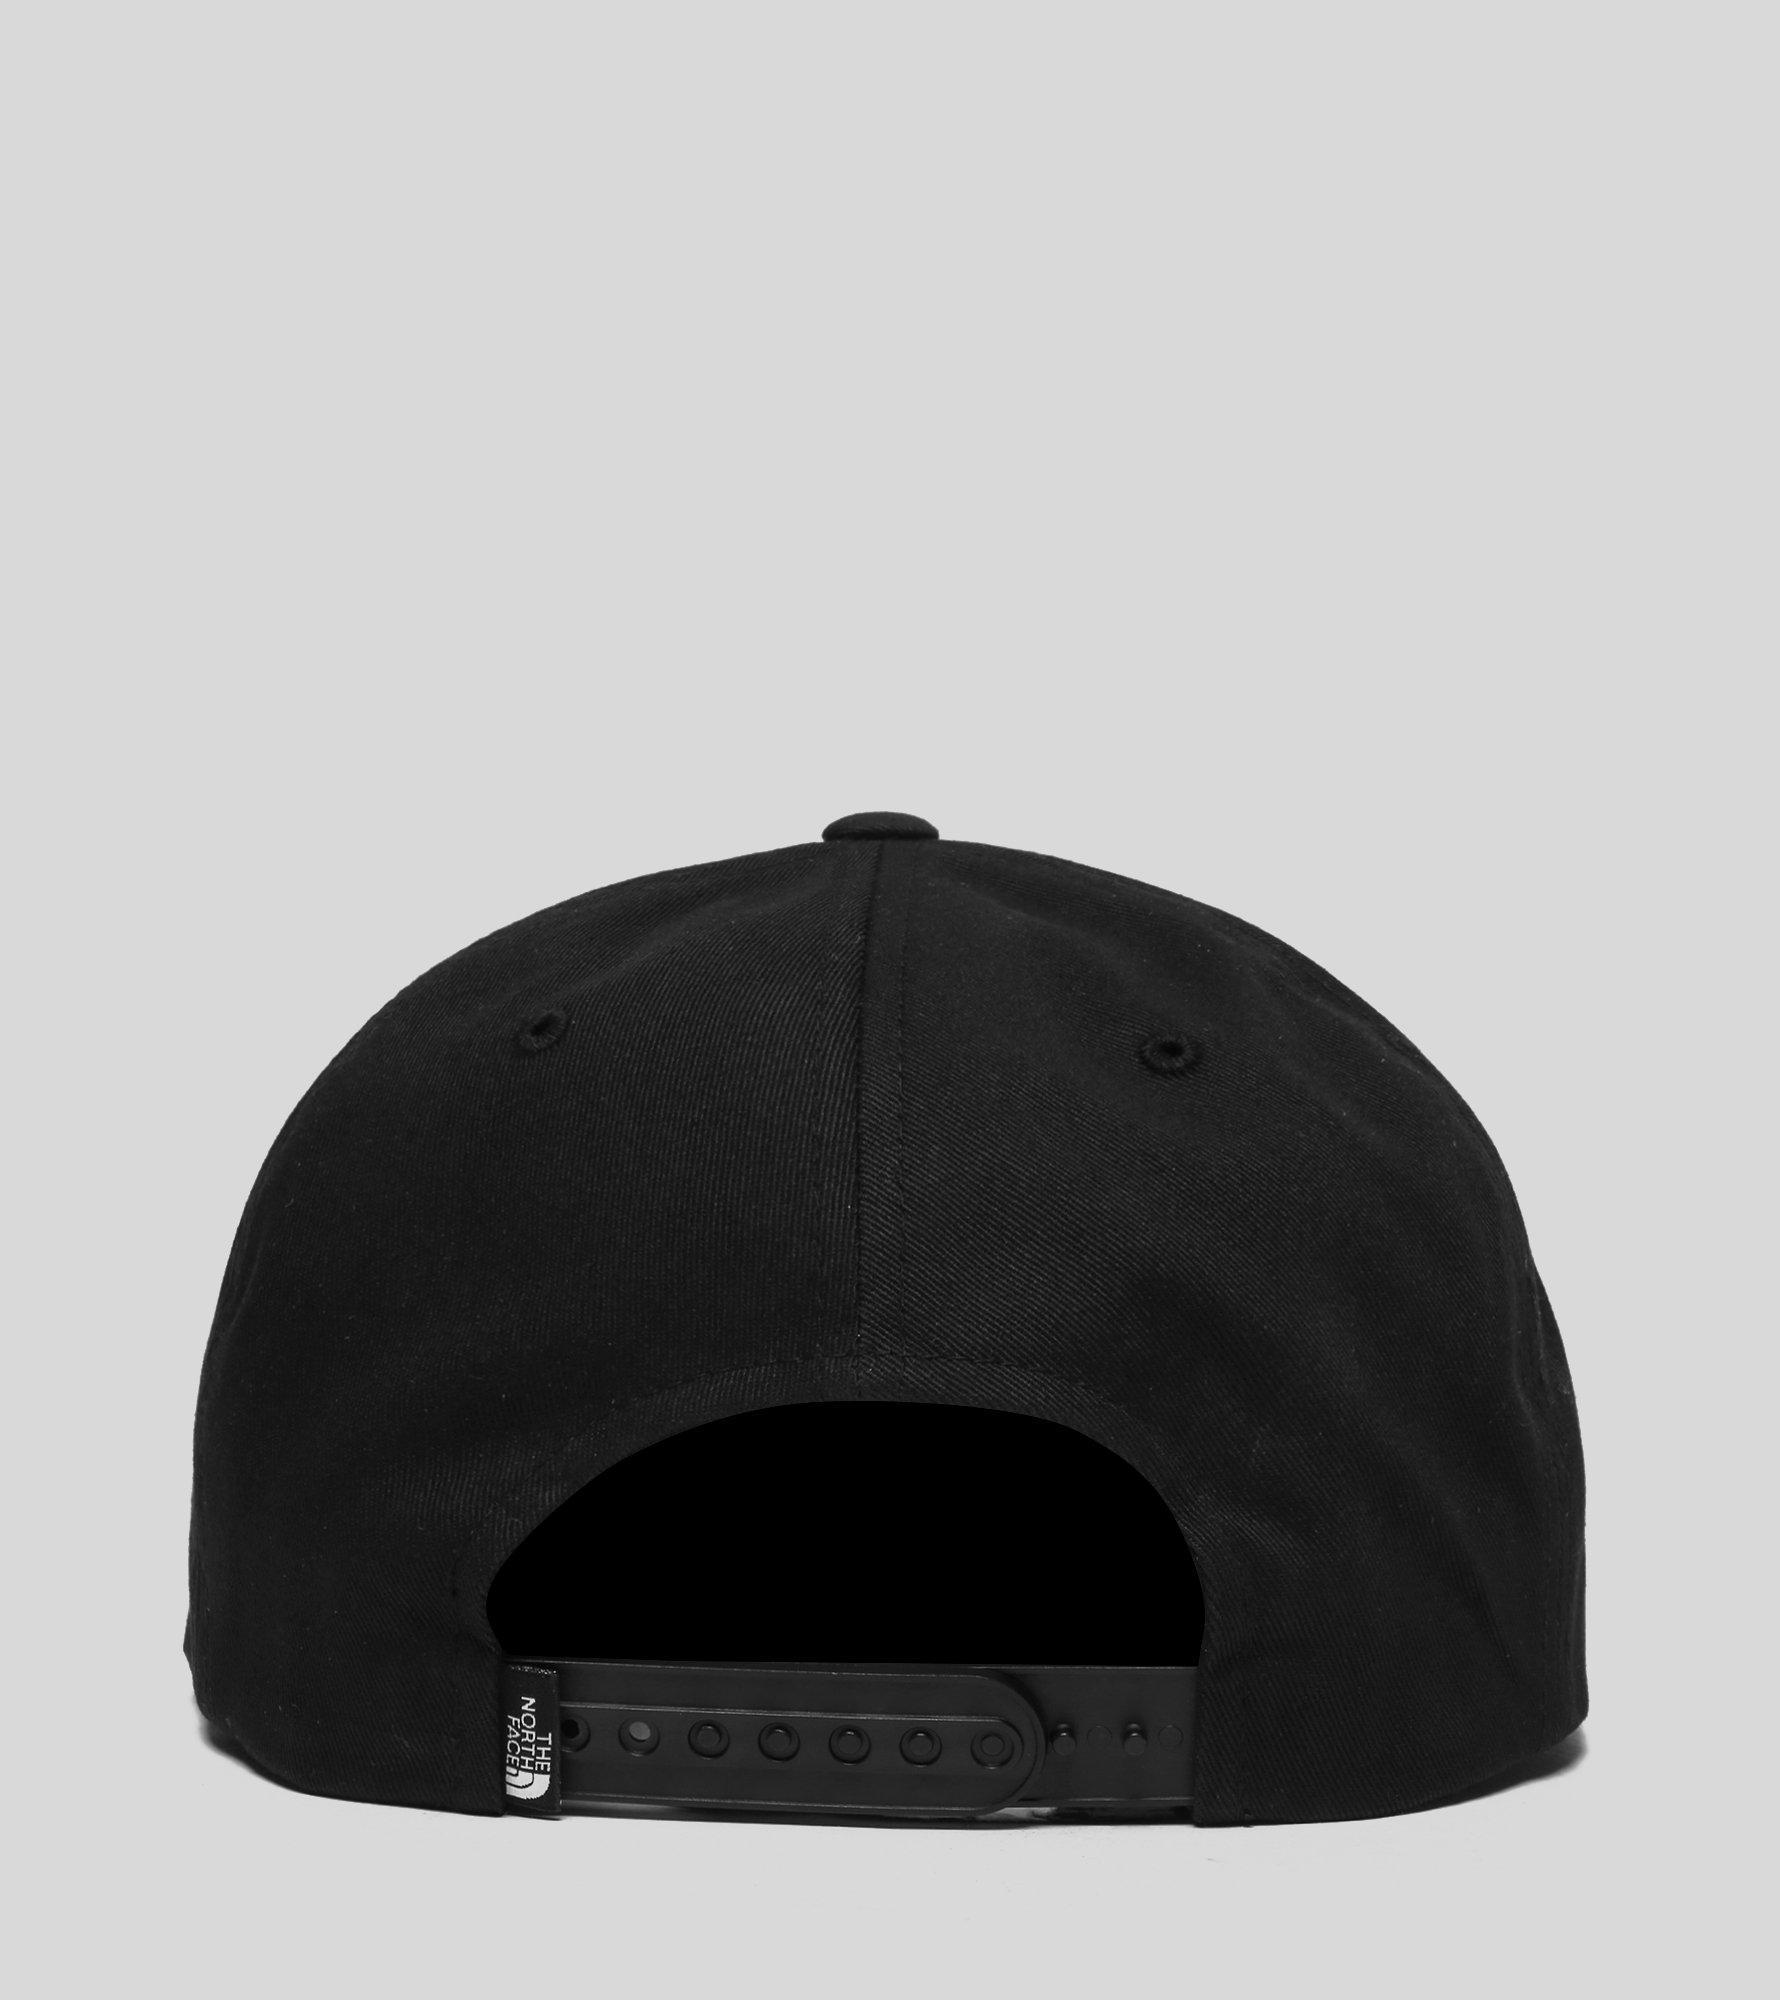 Lyst - The North Face Street Ball Cap in Black for Men 6a834f3d4666